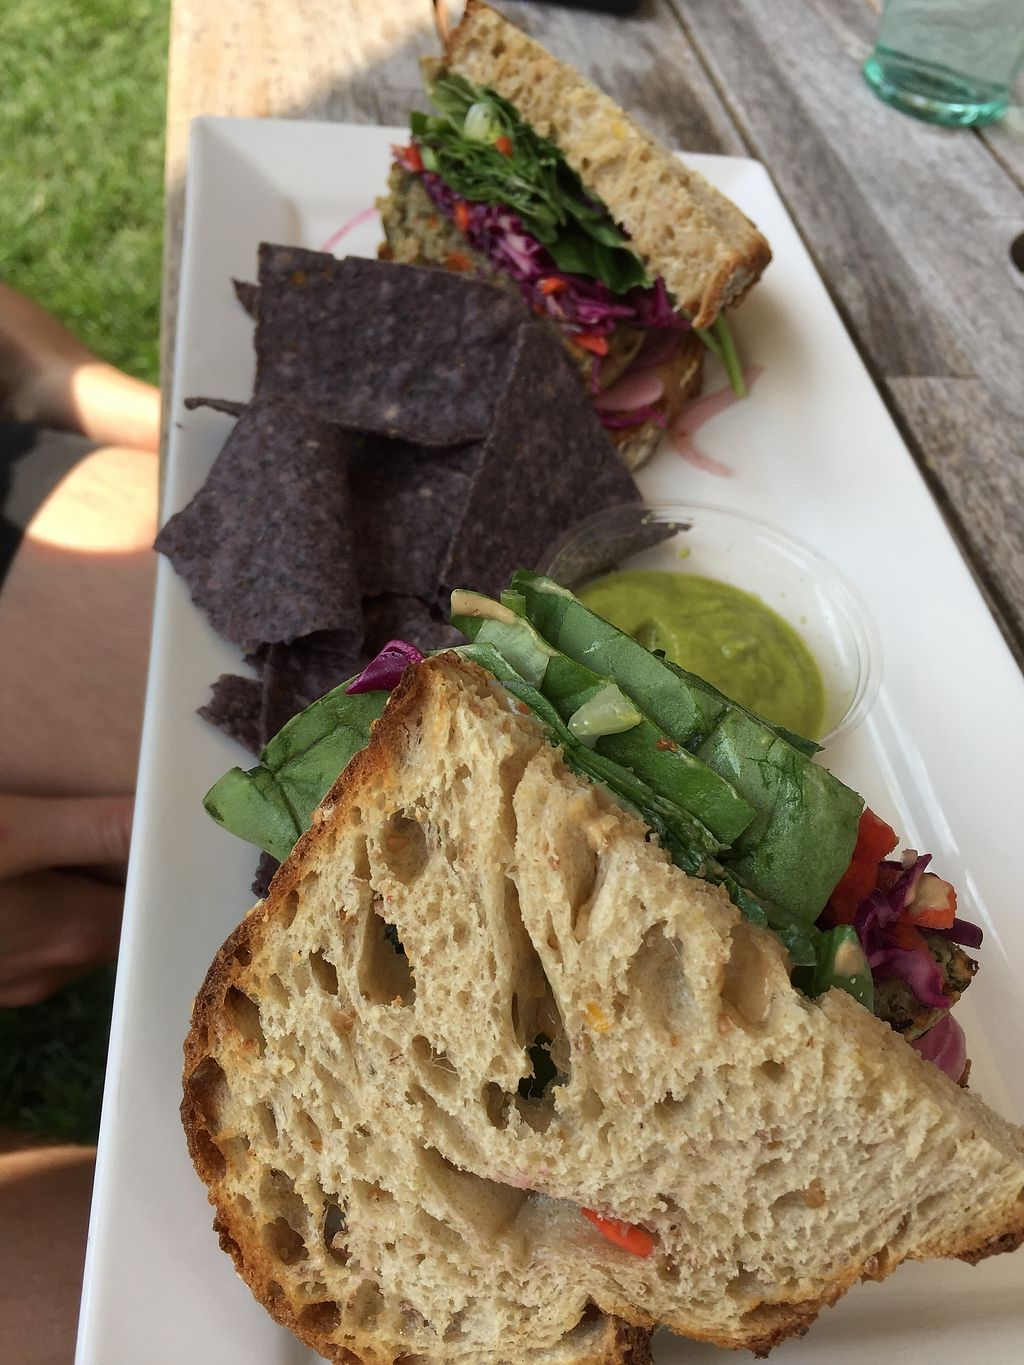 "Photo of Healthy Being Juicery  by <a href=""/members/profile/Swansonbuns"">Swansonbuns</a> <br/>Veggie burger on whole grain (gluten free available).  <br/> August 5, 2017  - <a href='/contact/abuse/image/45200/289447'>Report</a>"